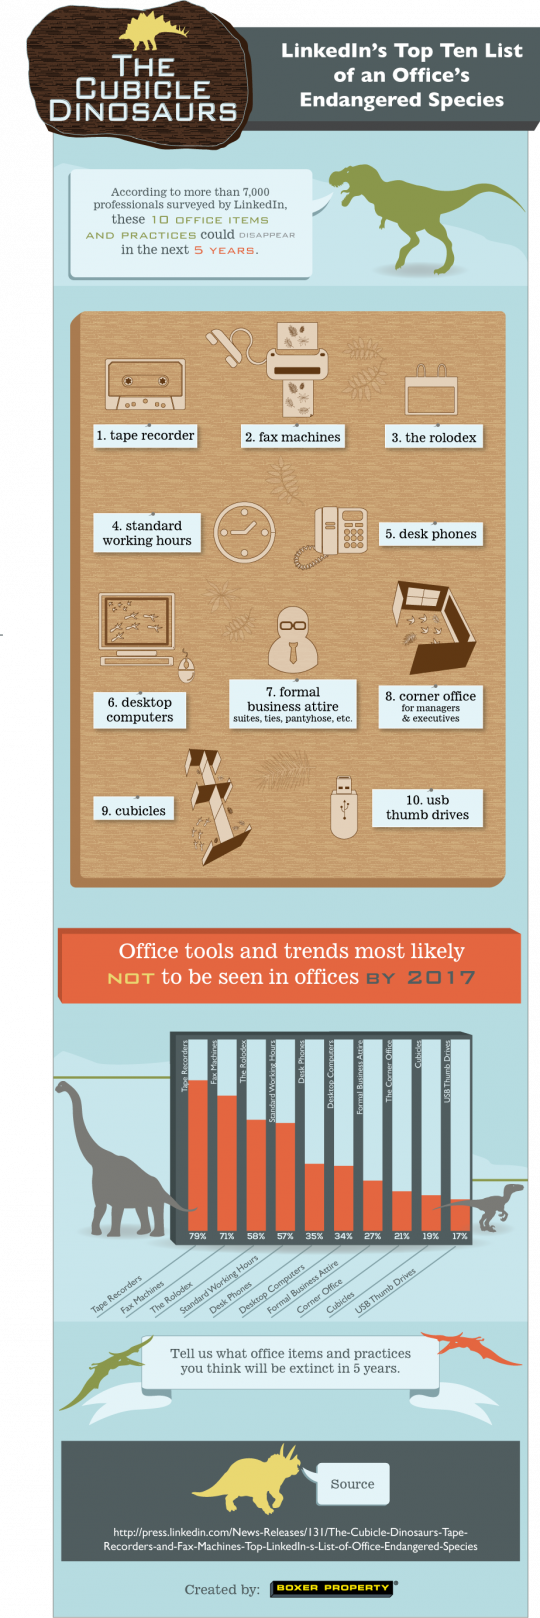 Top Ten List of Endangered Office Supplies